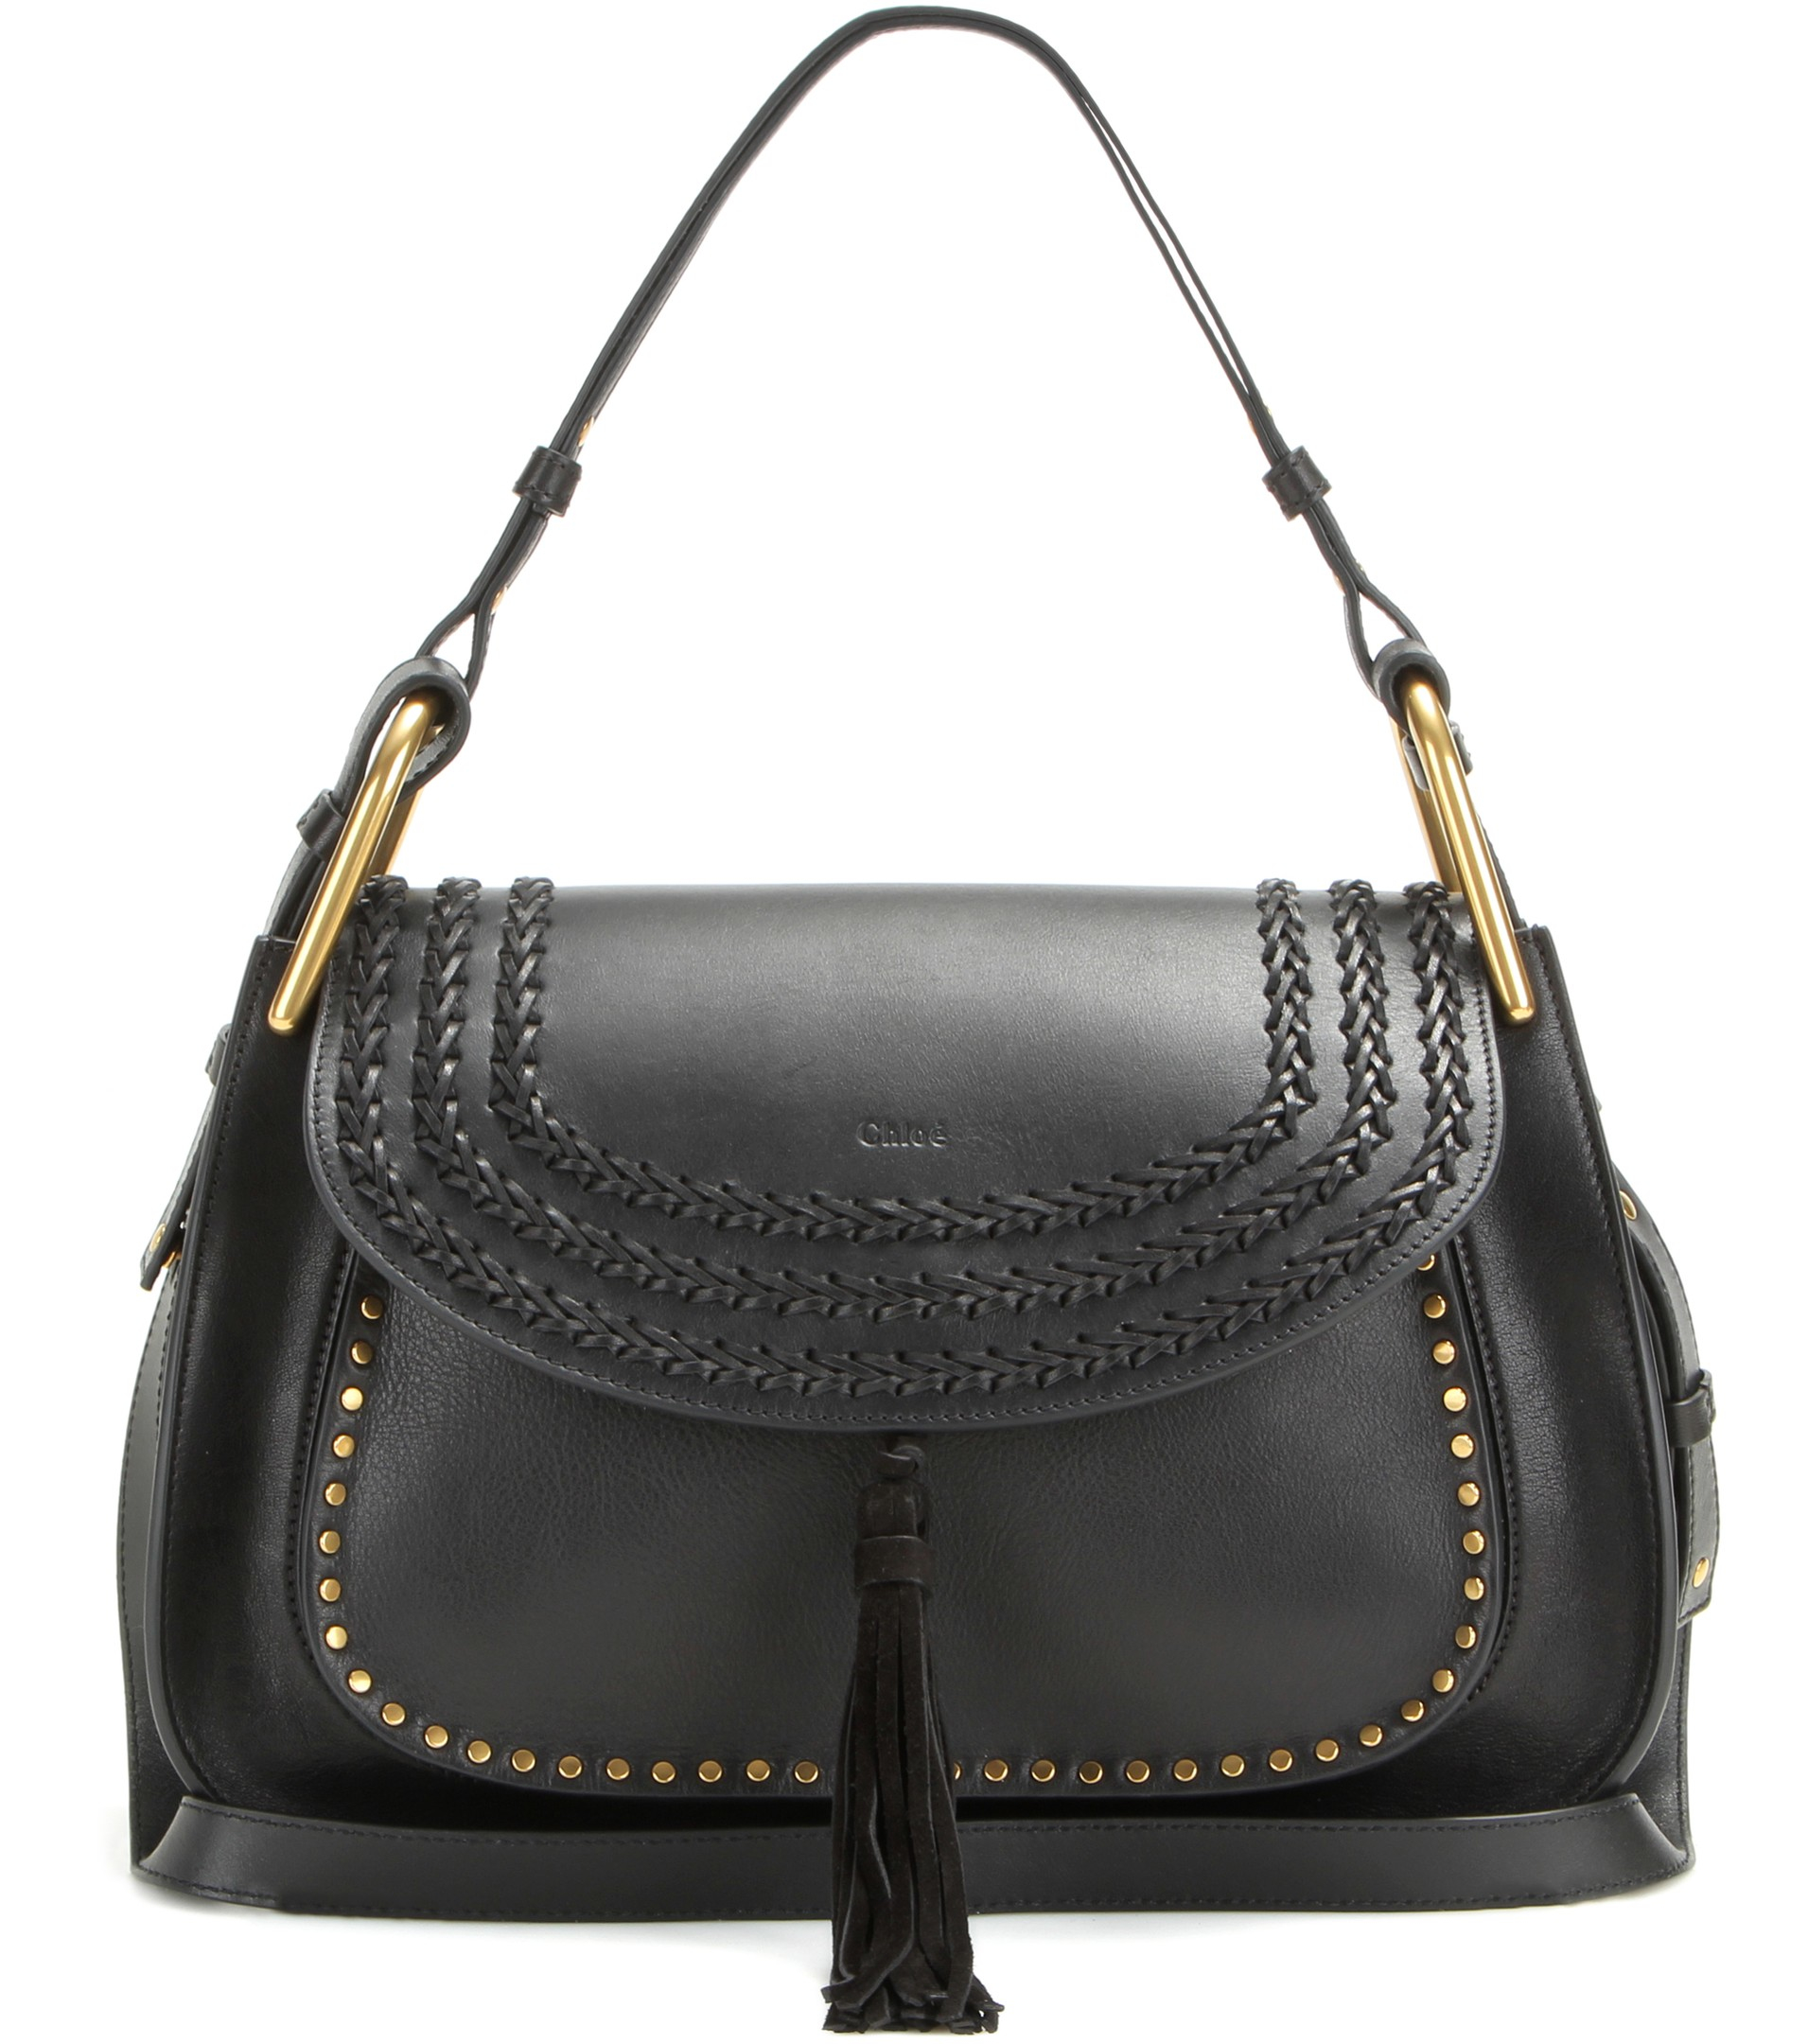 Chlo¨¦ Hudson Leather Shoulder Bag in Black | Lyst